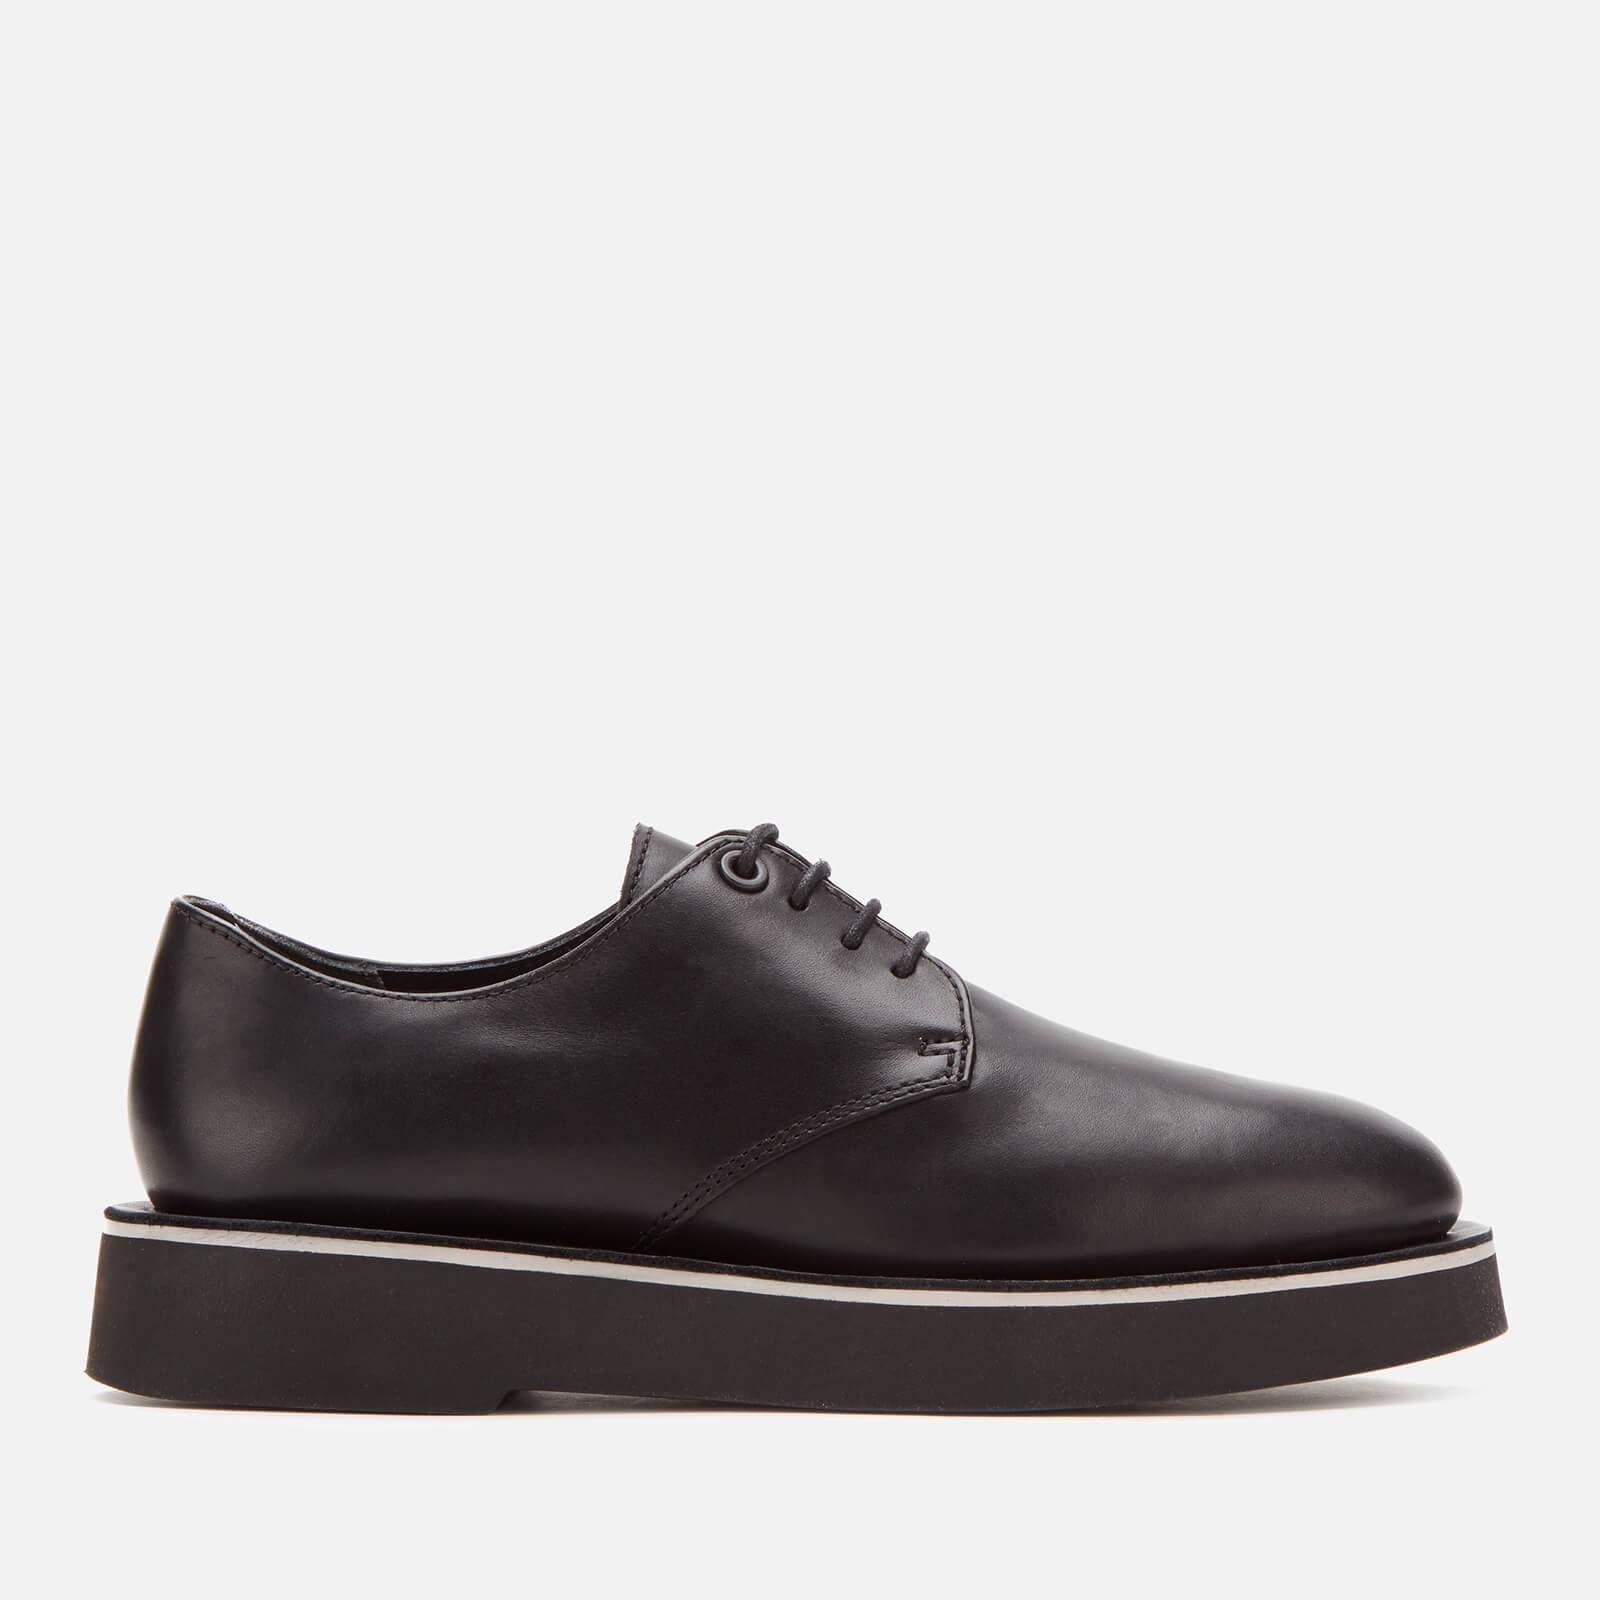 Camper Women's Tyra Leather Derby Shoes - Black - UK 8